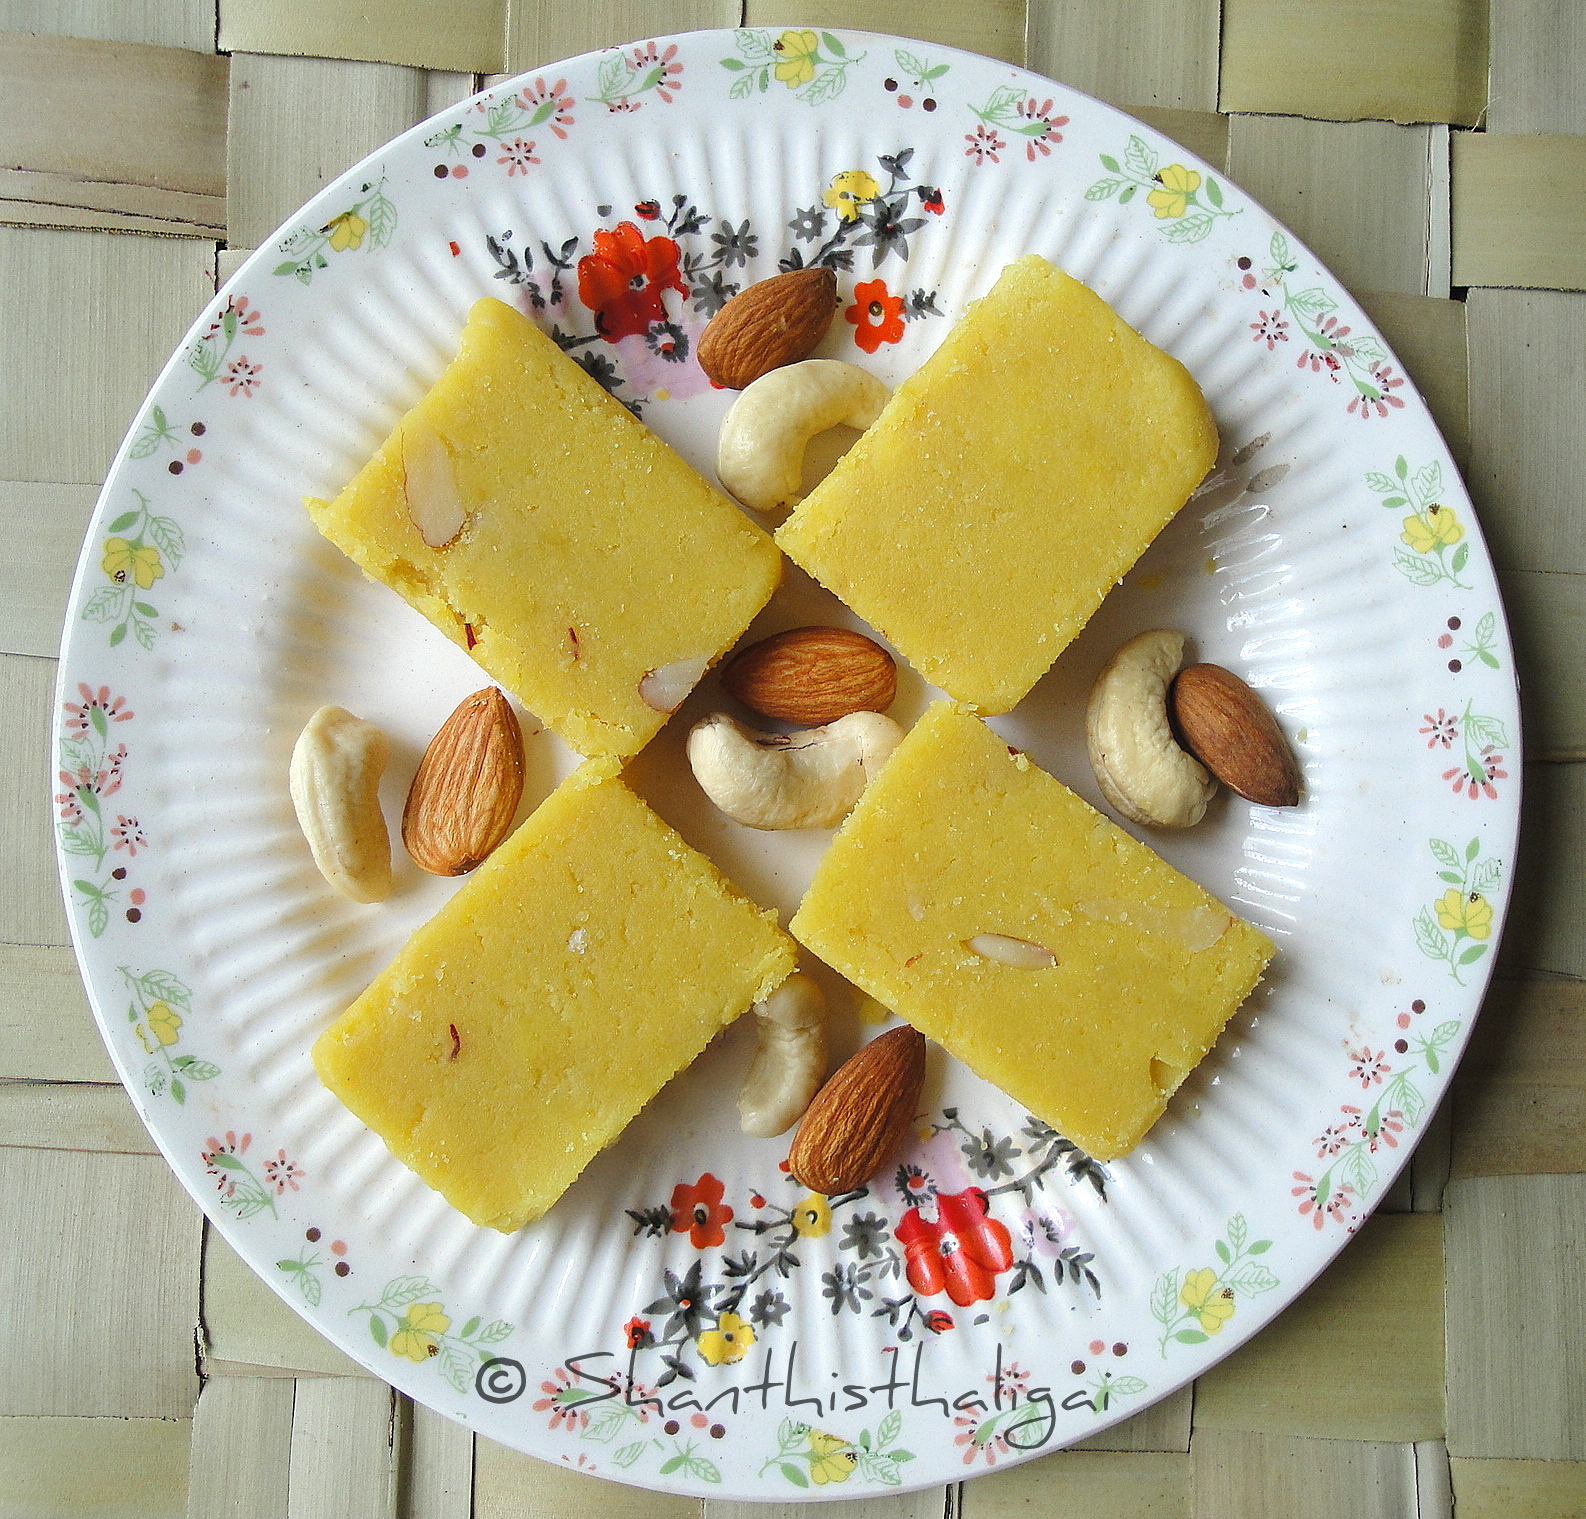 Kaju badam barfi recipe, How to make kaju badam barfi, How to make cashew almond barfi